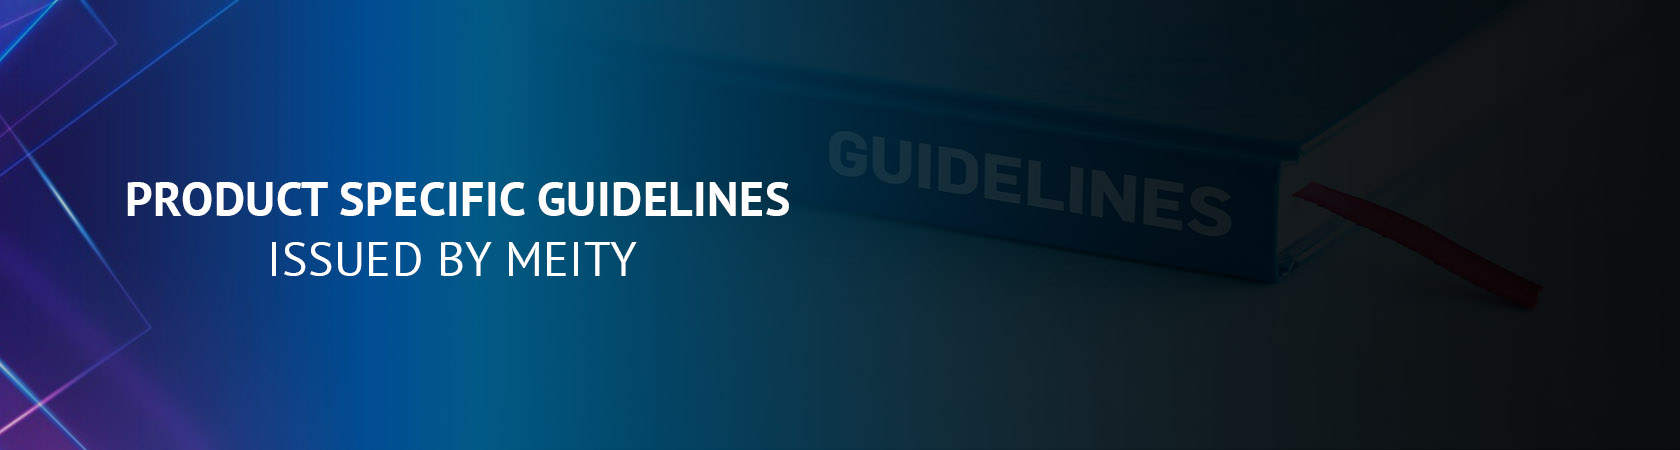 product-guidelines(1680×450)